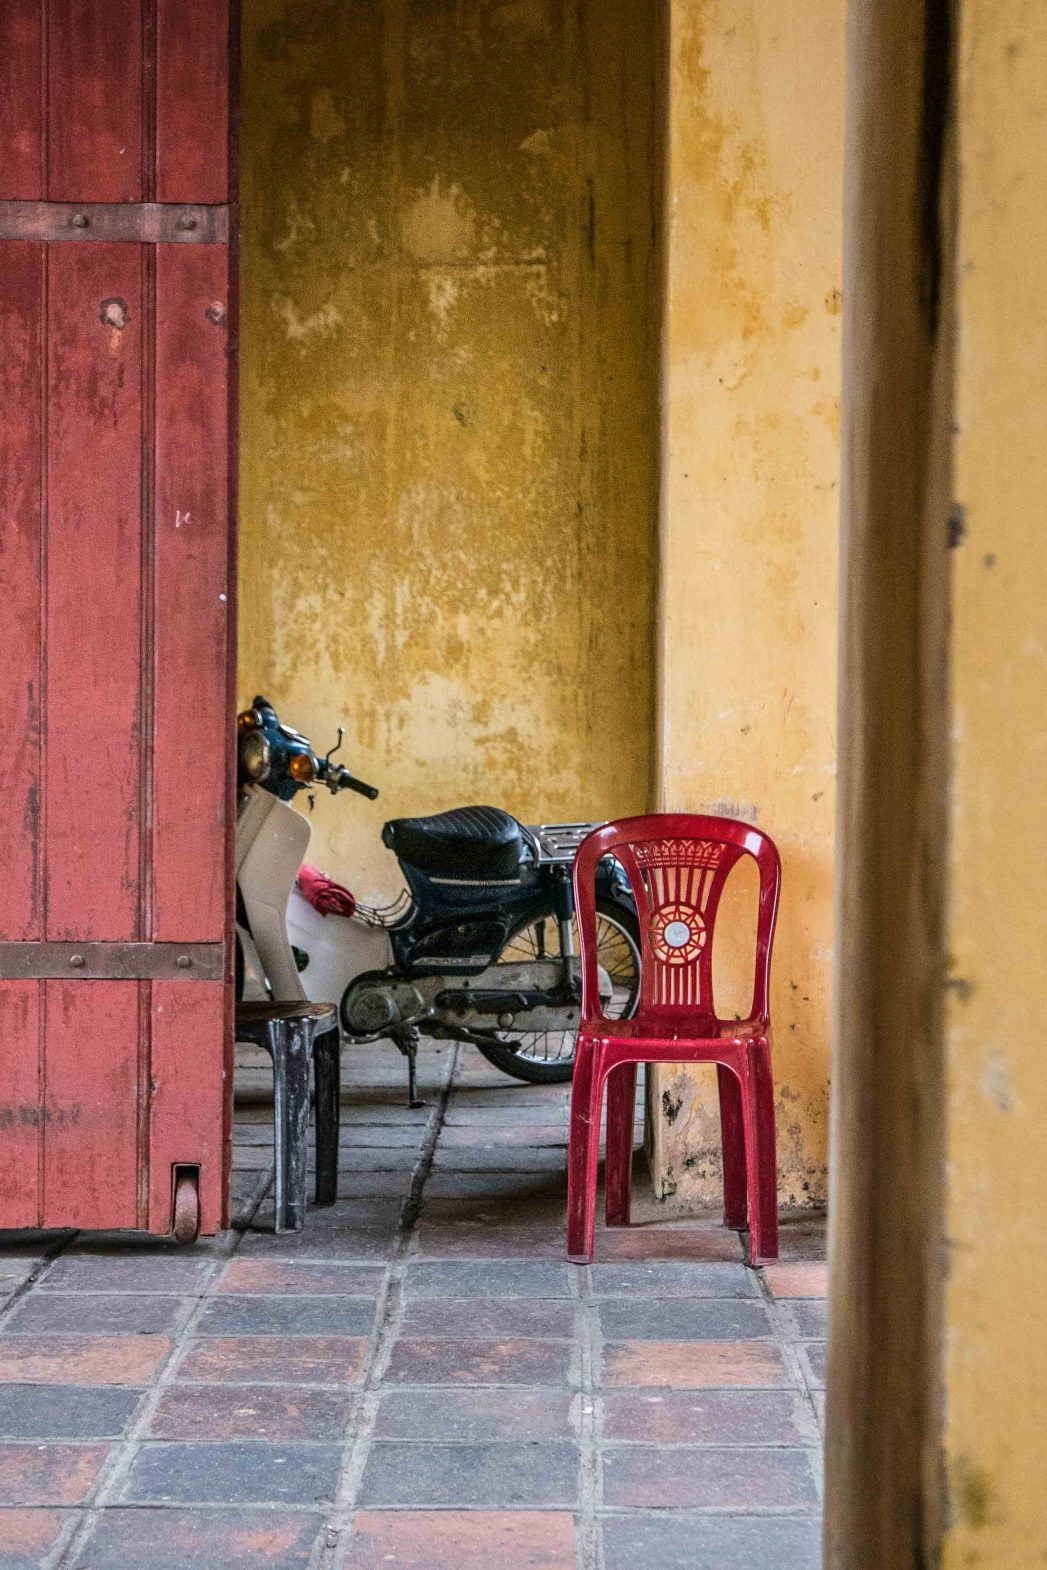 Plastic chairs of Southeast Asia: One of the entrances to the Citadel in the royal town of Hue, Vietnam.